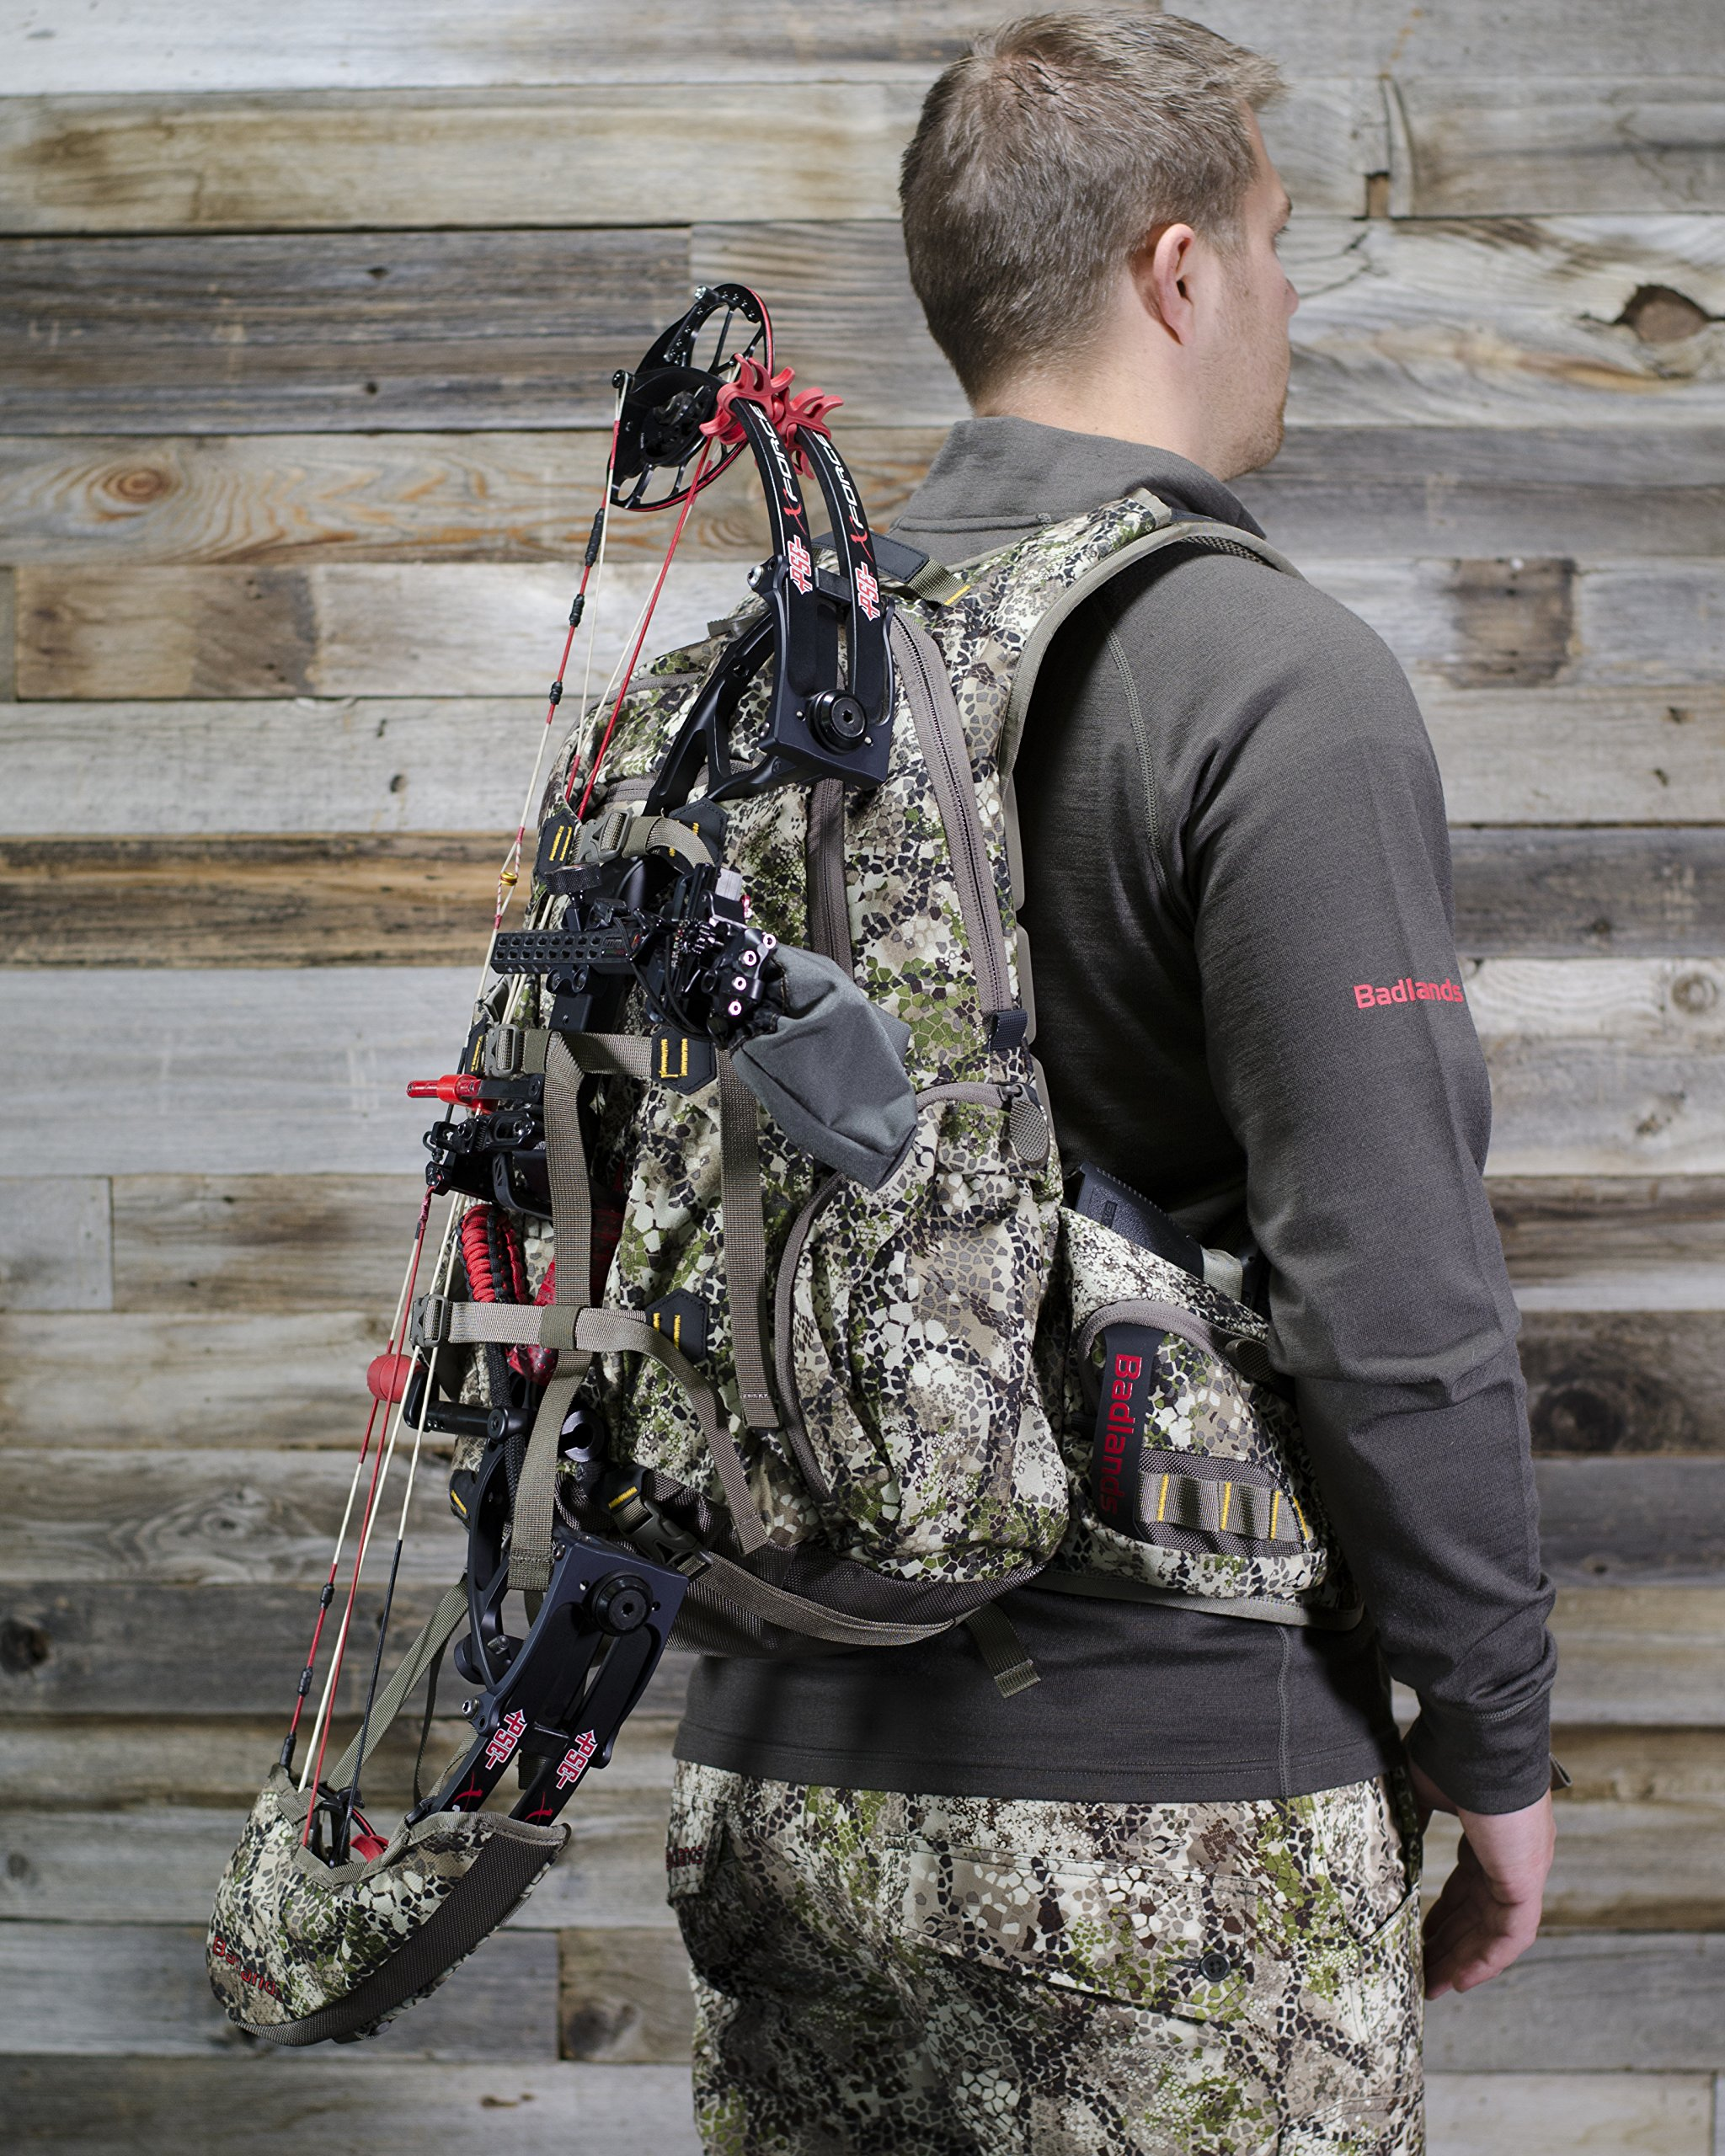 Badlands Superday Camouflage Hunting Backpack - Bow, Rifle, and Pistol Compatible, Approach Camo by Badlands (Image #7)